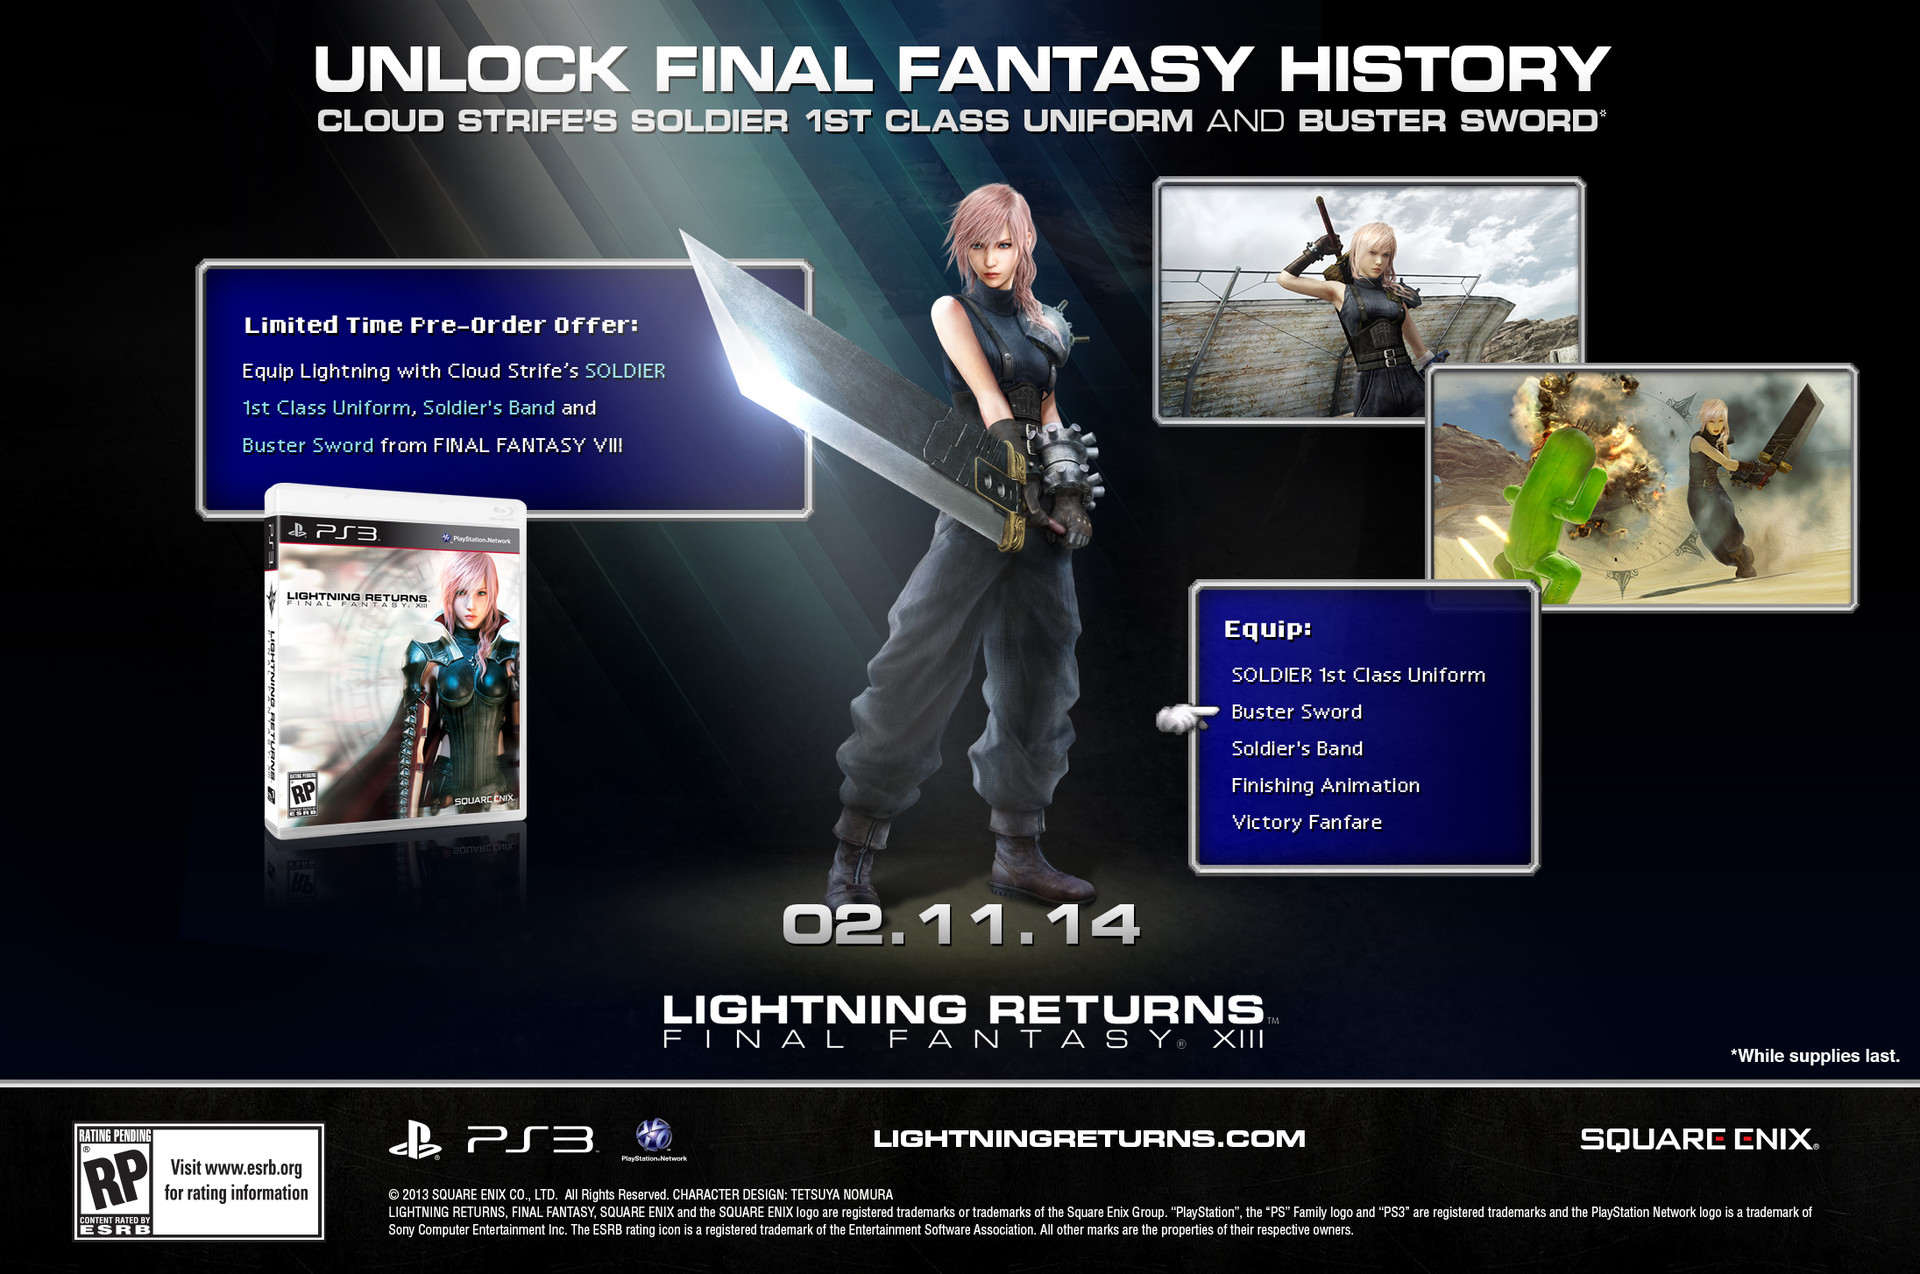 FFXIII Lightning Returns Cloud Strife Pre-Order Bonus